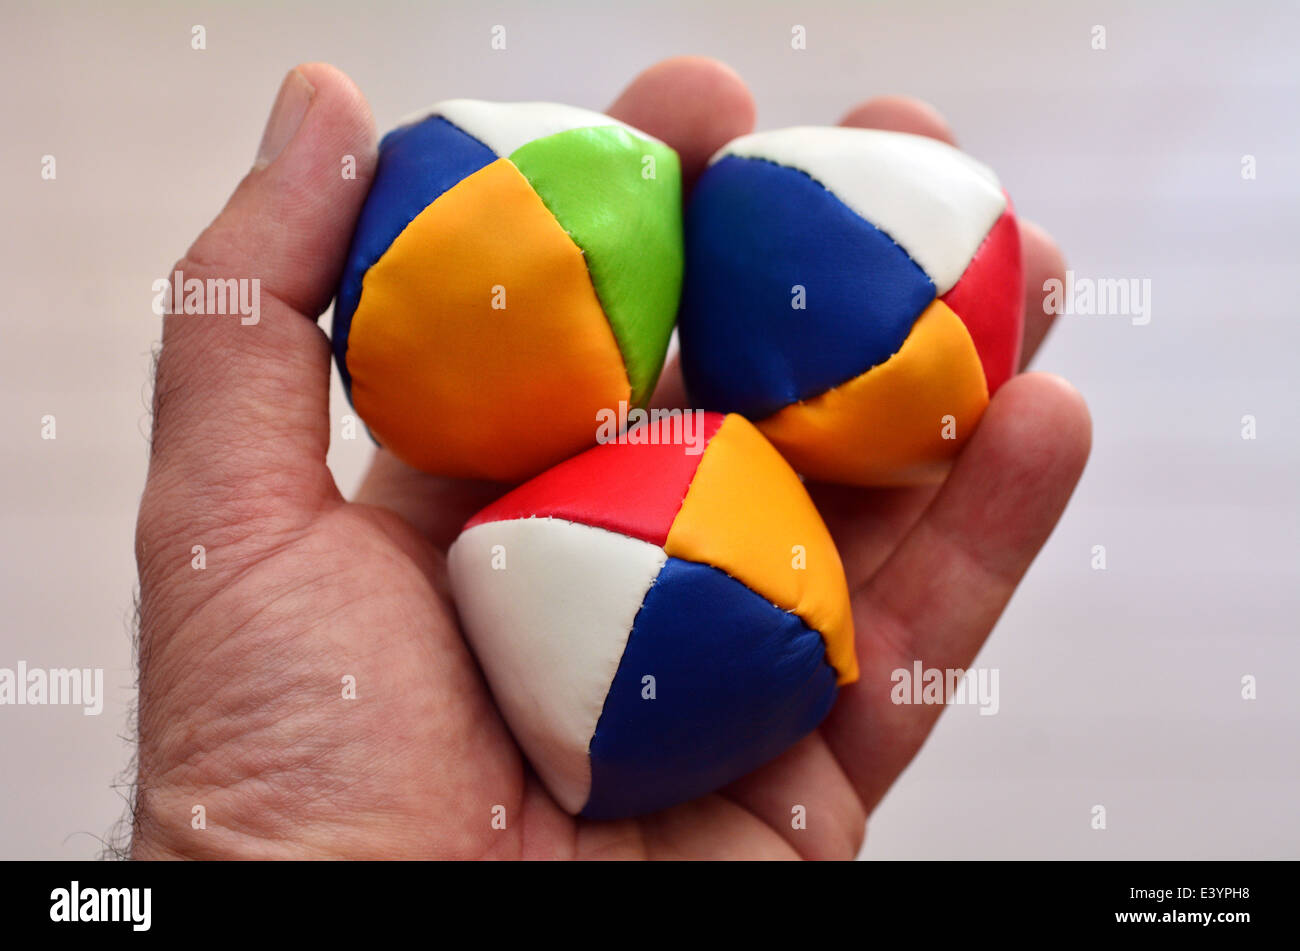 Man holds three (3) Juggling balls on one hand (left) against light background. concept photo, copy space - Stock Image